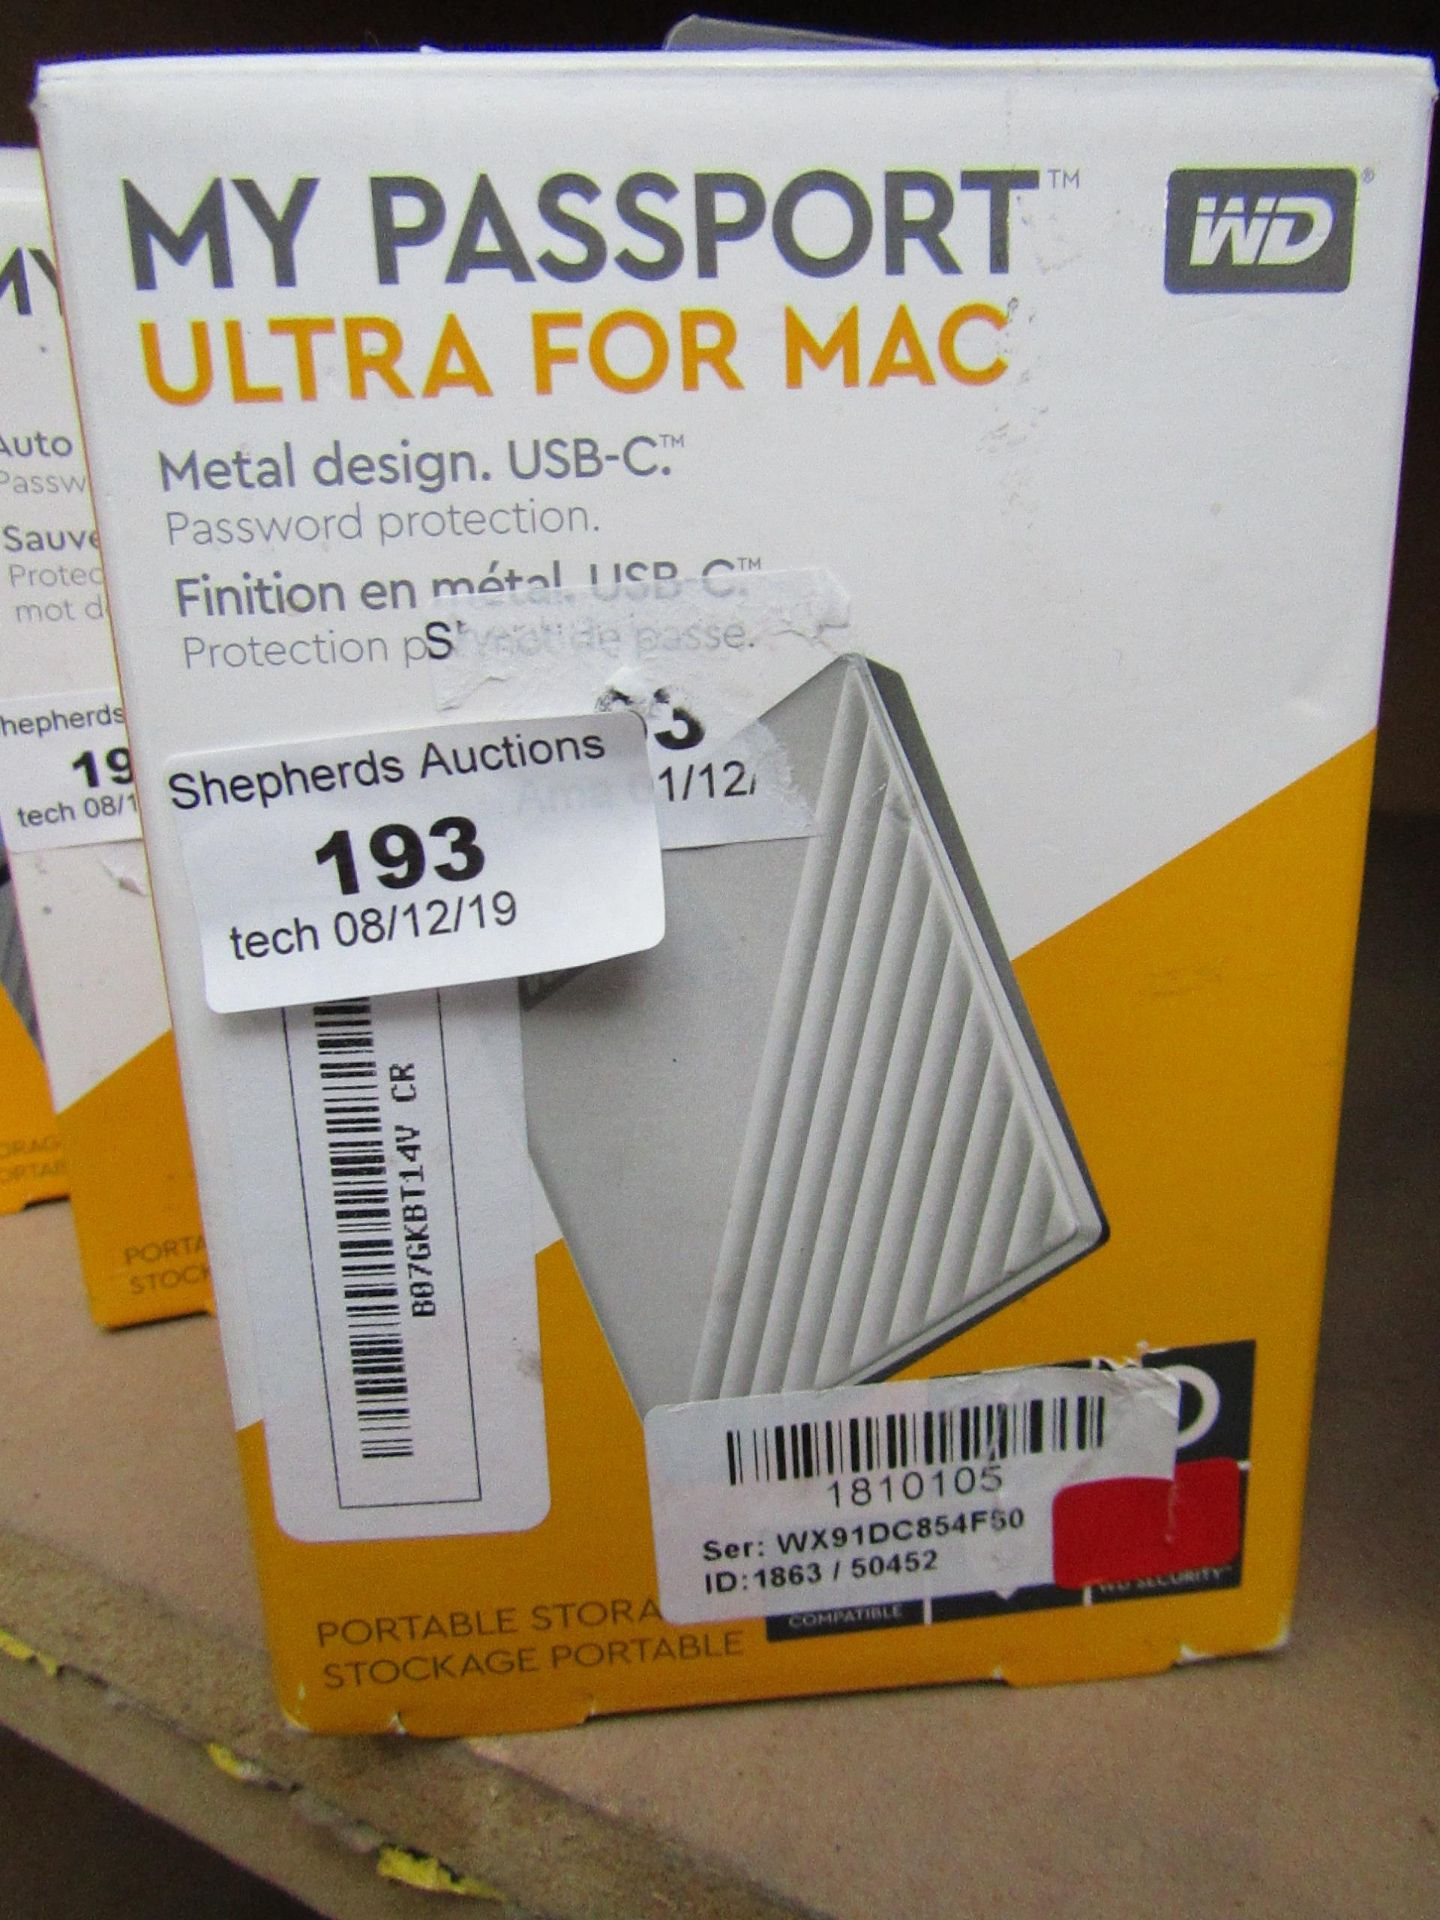 Lot 193 - Western Digital portable storage for Mac 4TB, untested and boxed.